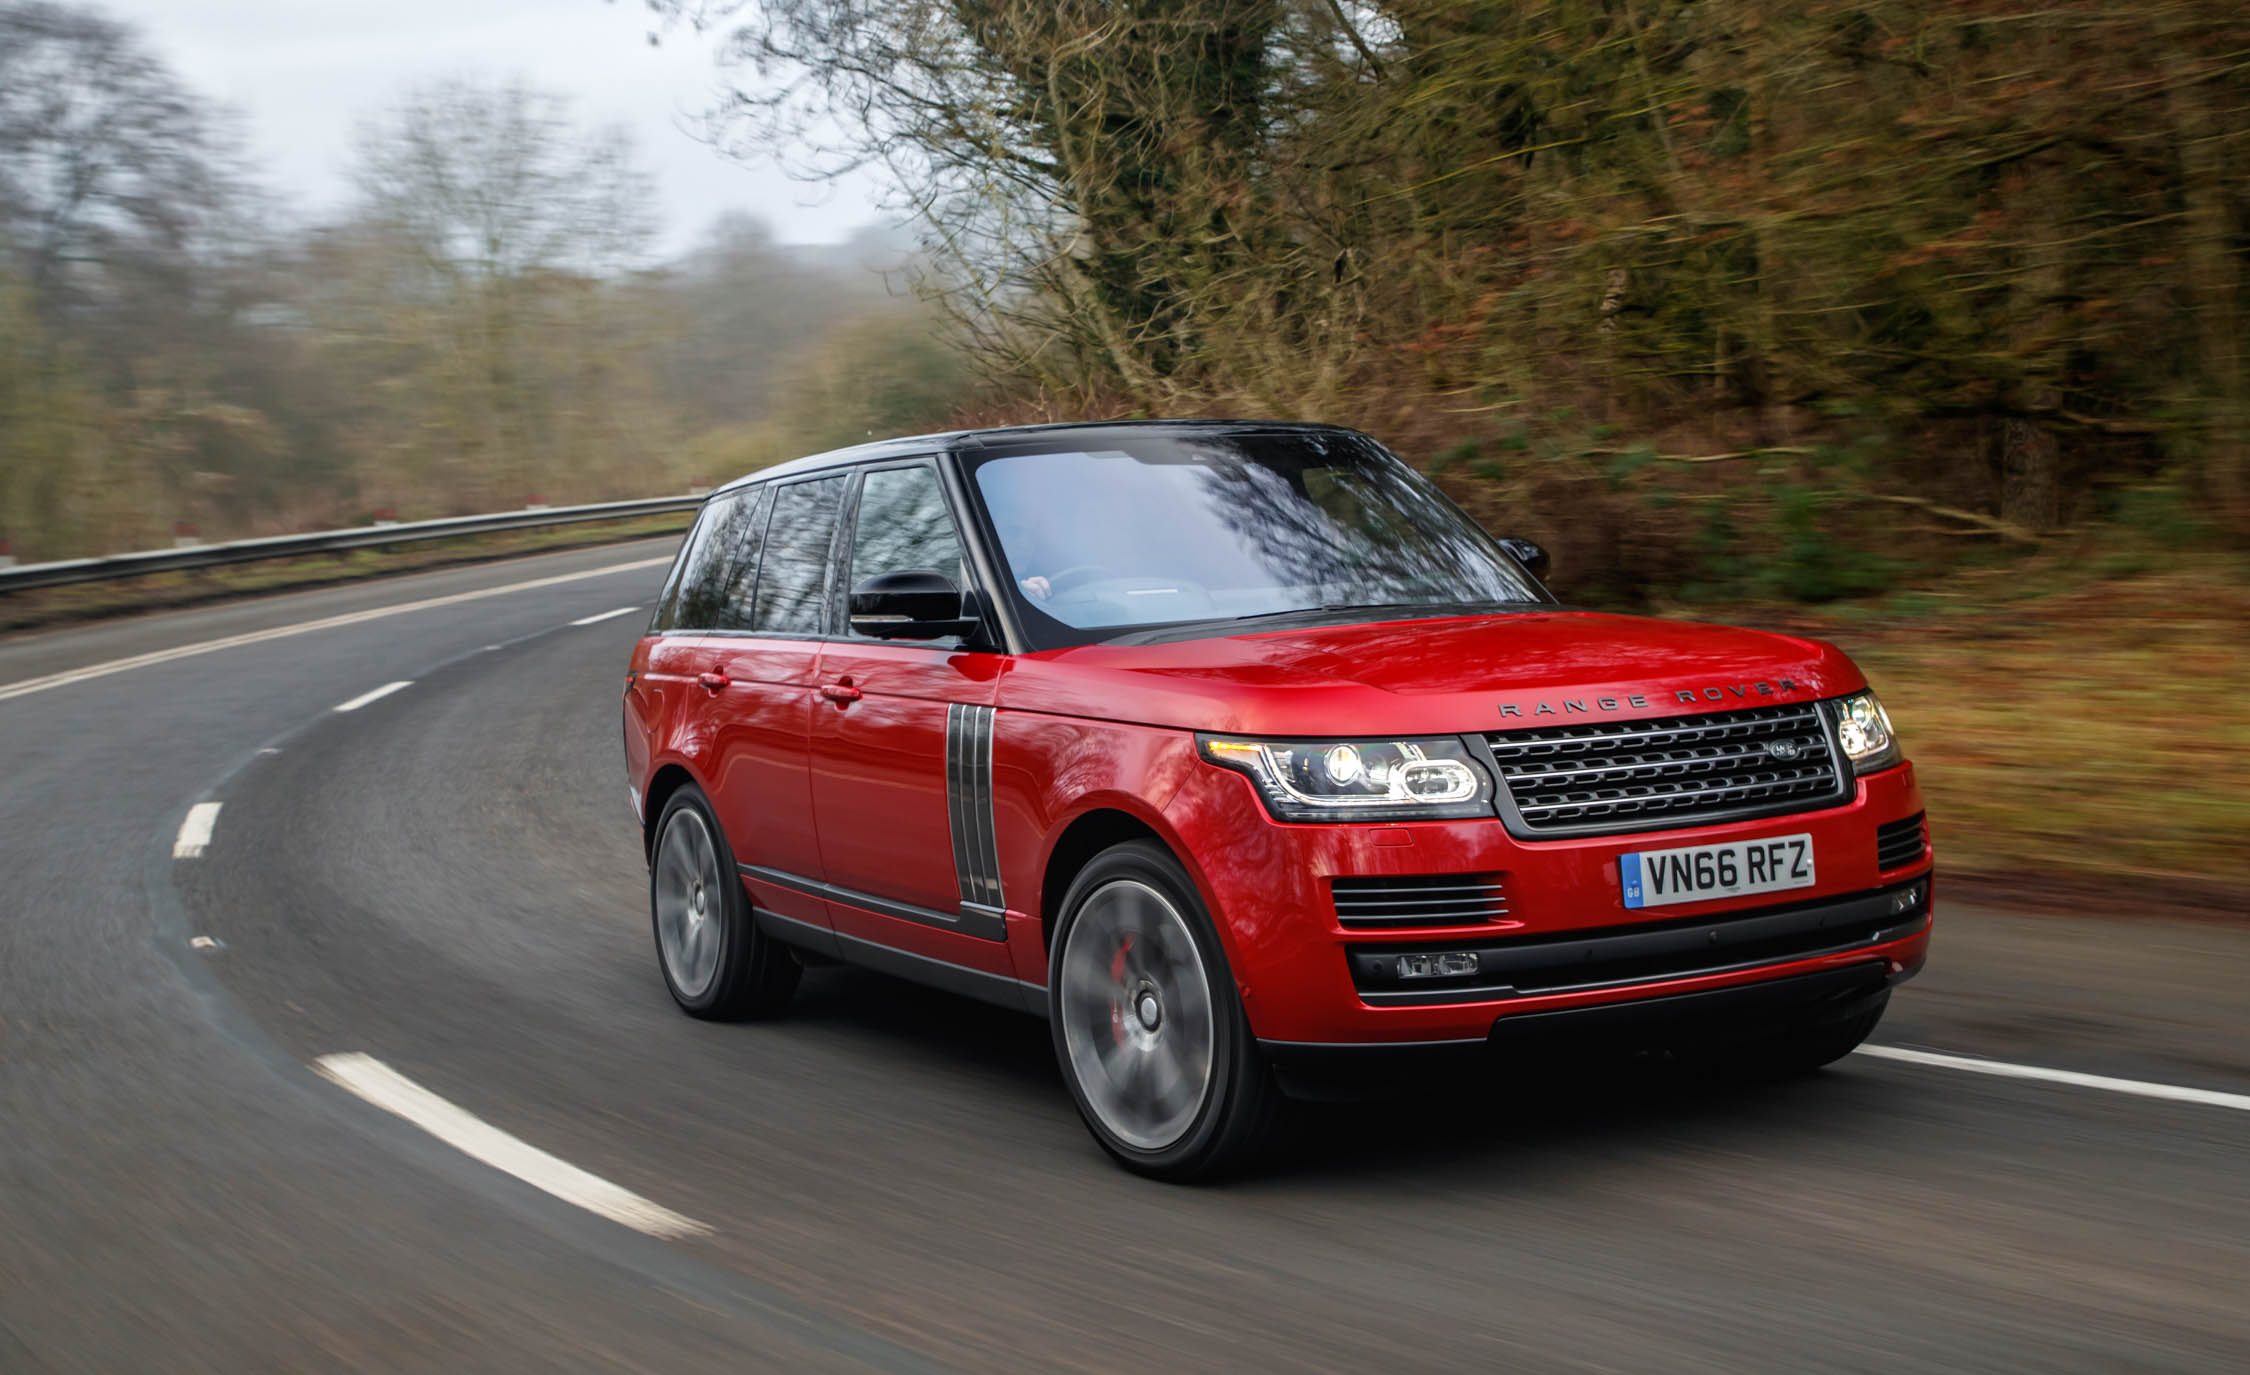 2017 Land Rover Range Rover SVAutobiography Dynamic Test Drive (Photo 15 of 24)